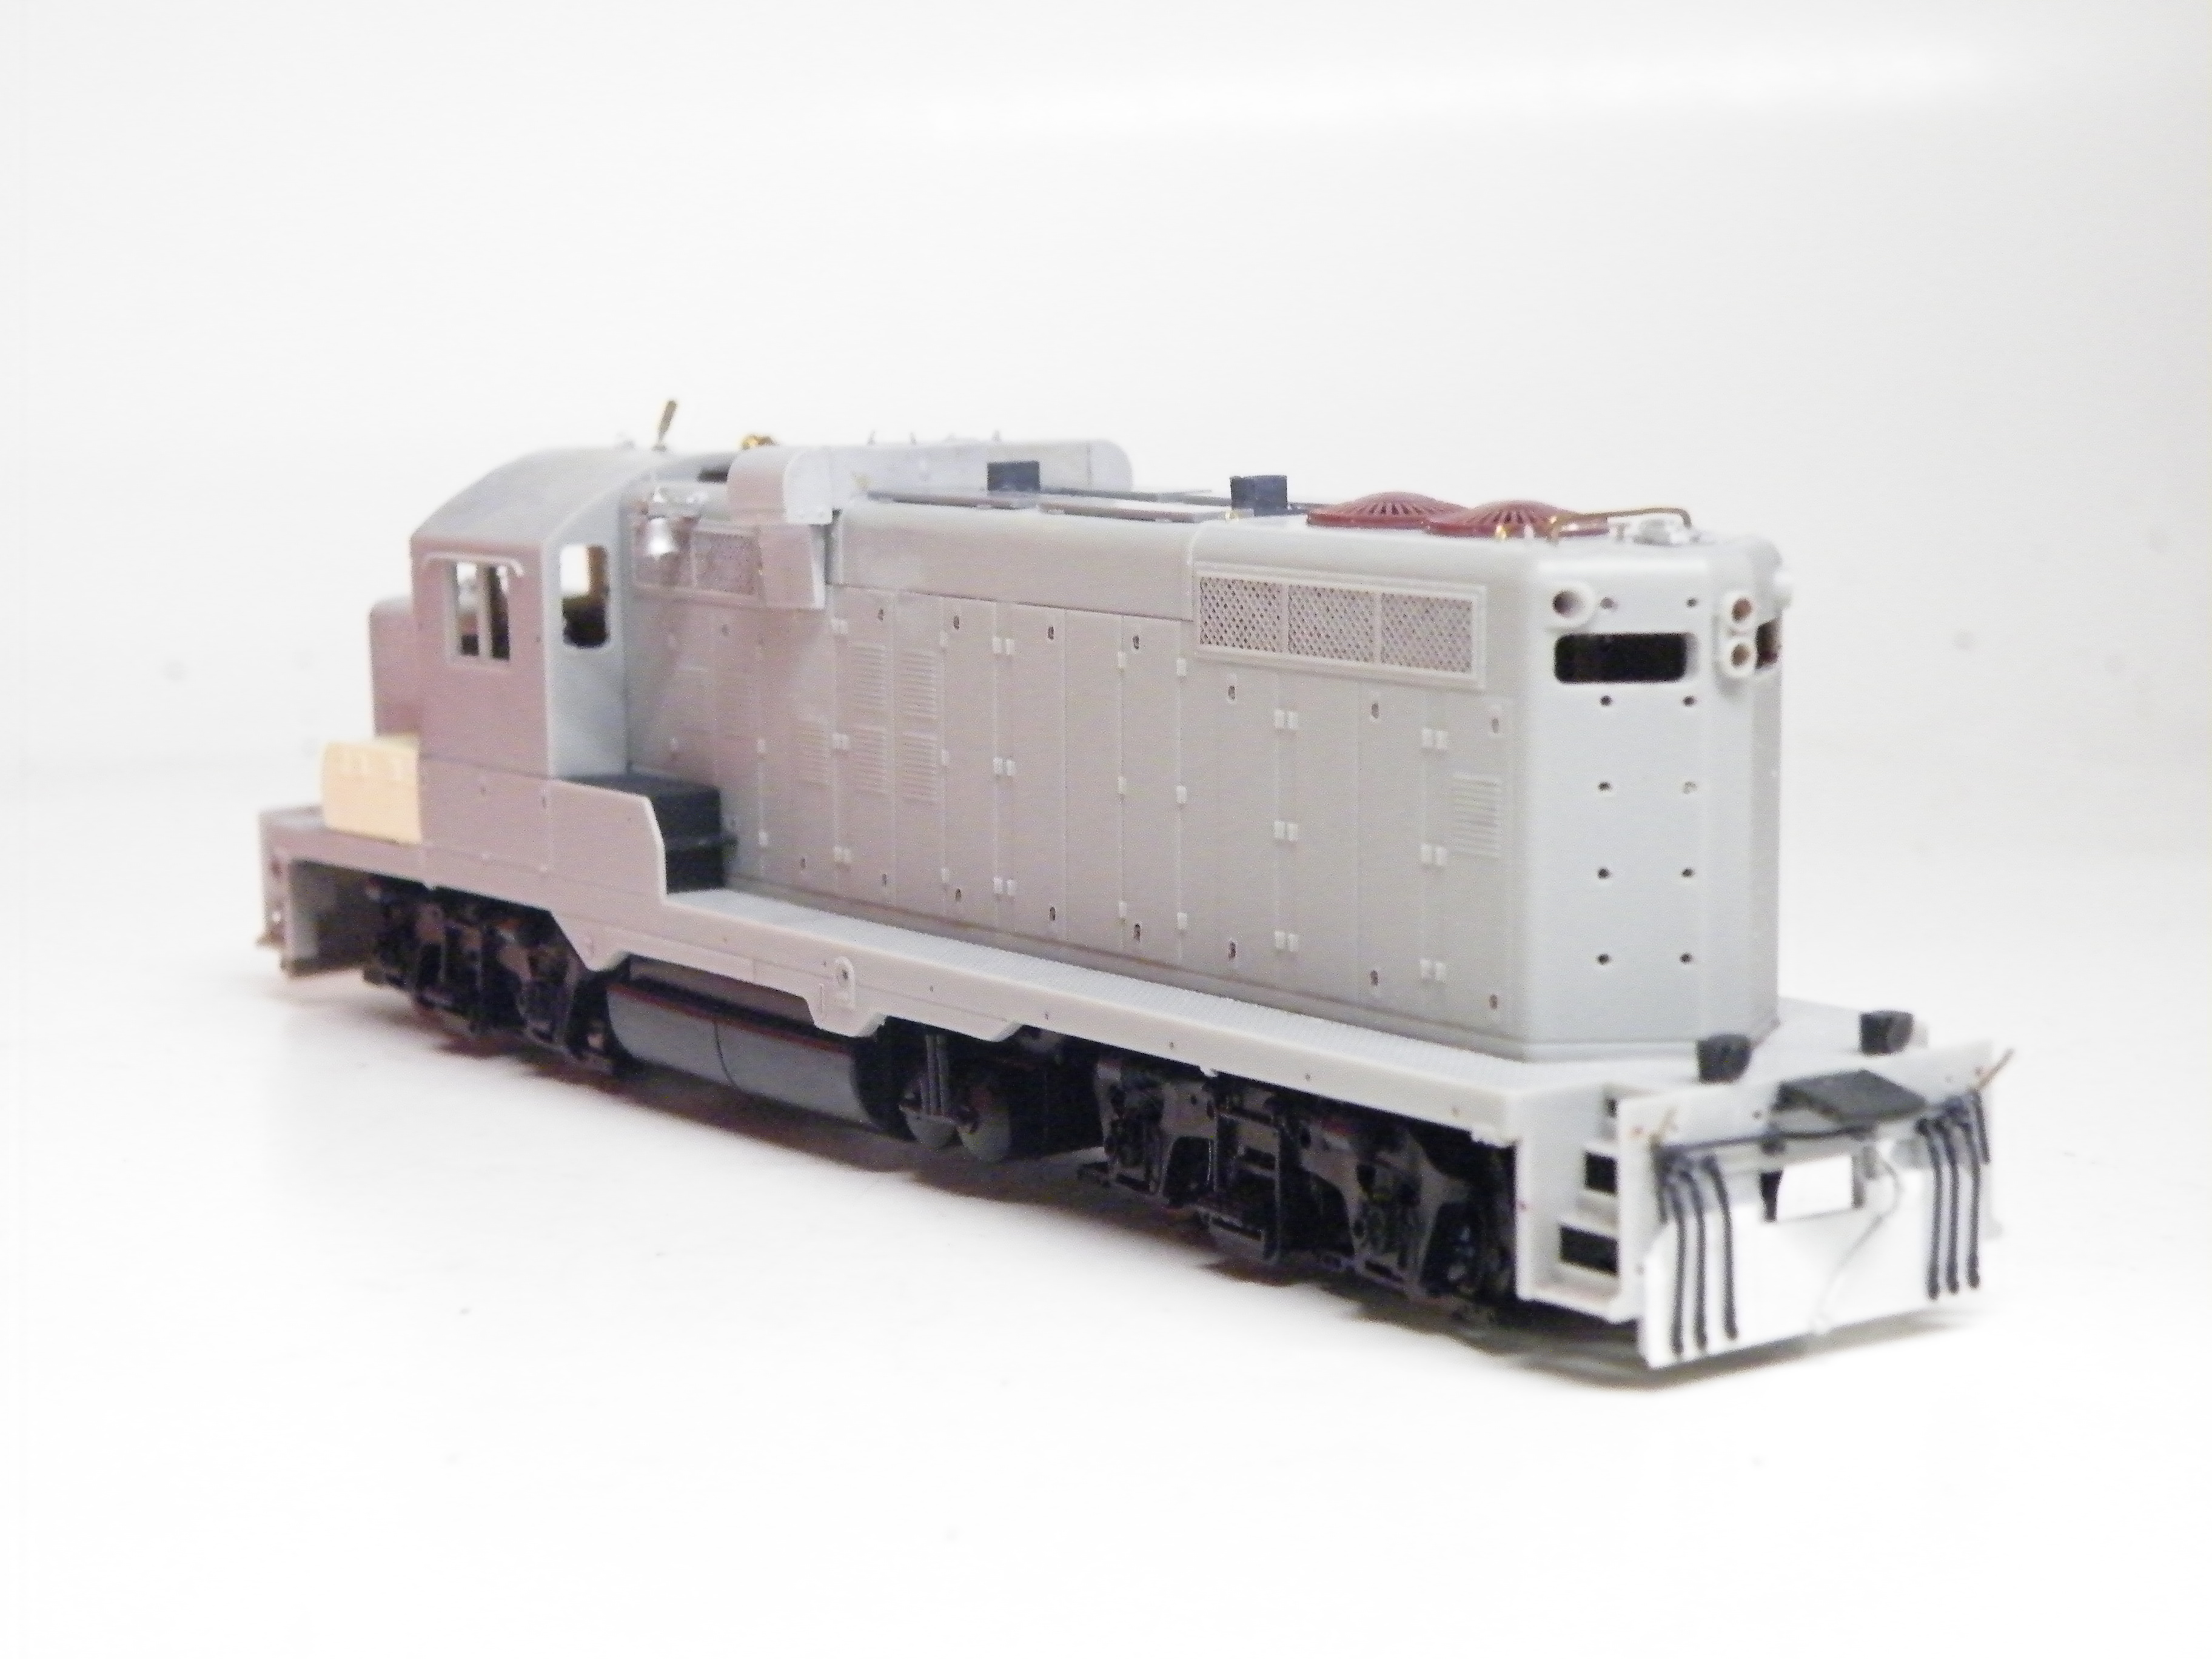 The rear end of 483, showing filed down side skirts, and new rear pilot plate made of styrene. The this image, the unit is missing the two rear grab irons on the pilot plate, rear ditch lights, and a second set of exhaust stacks I had yet to purchase.